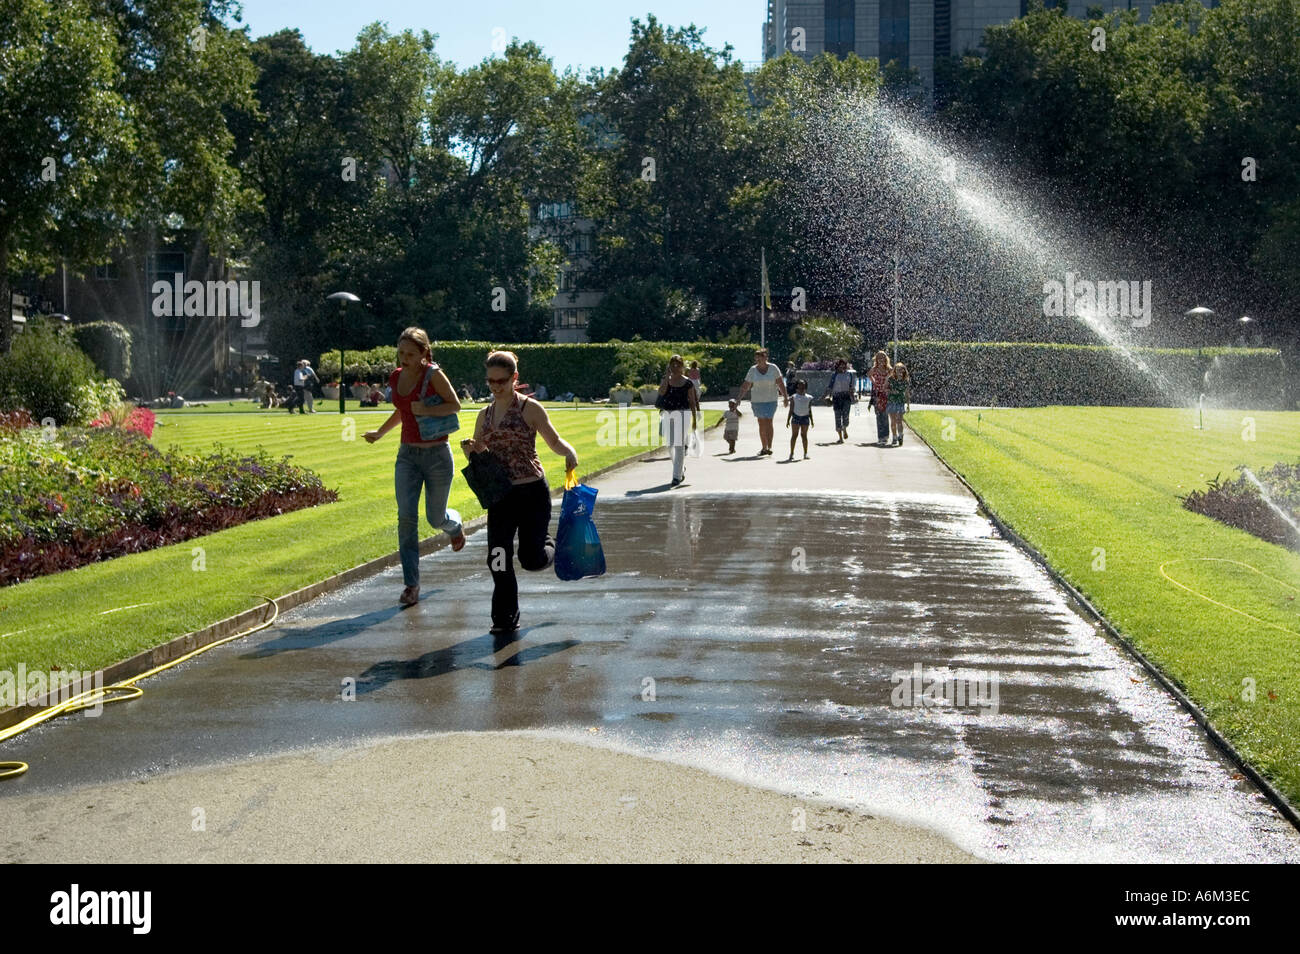 Girls dodging water sprinklers during a heat wave Victoria Embankment Gardens Central London - Stock Image